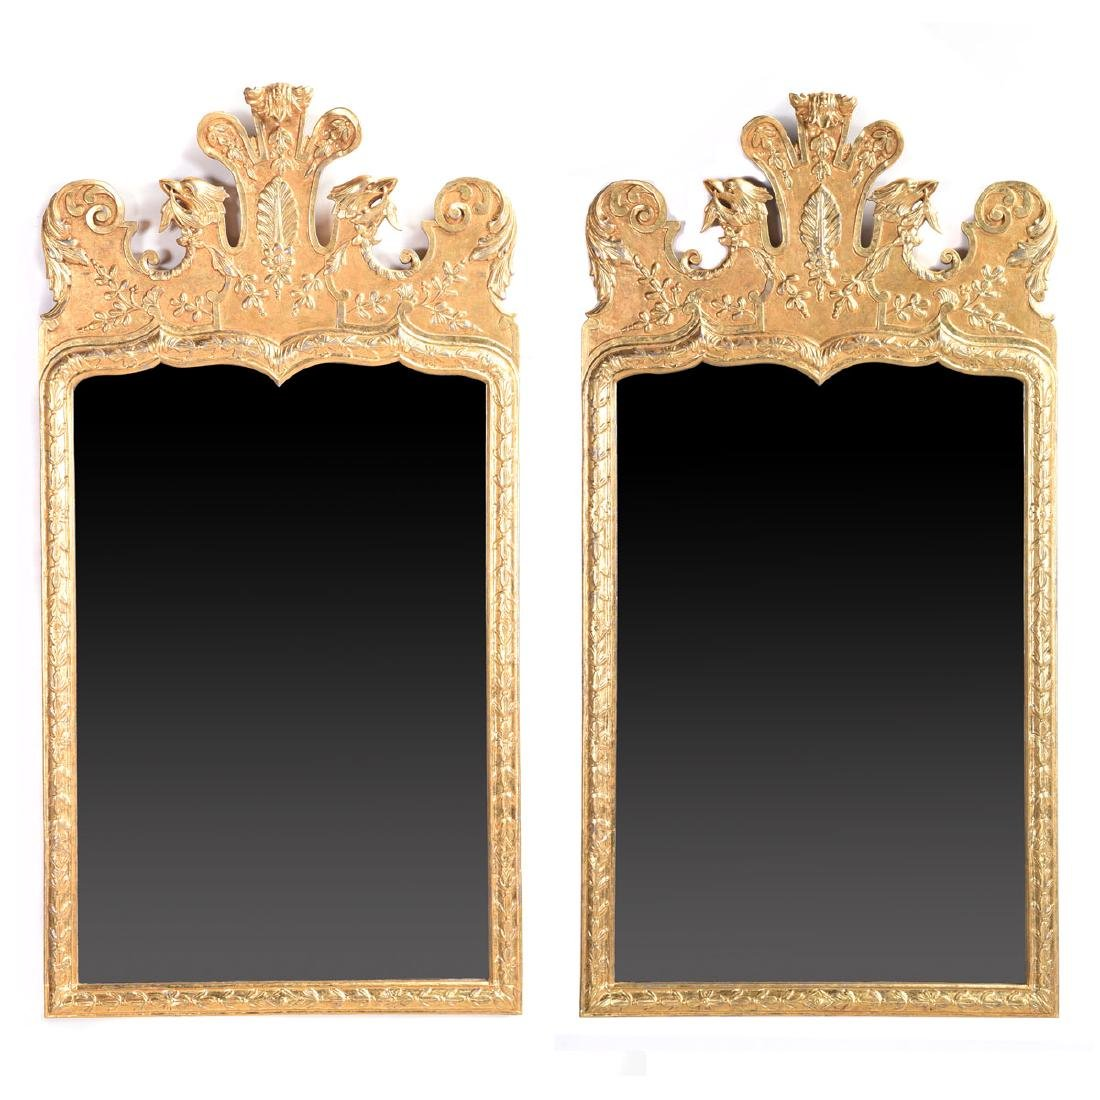 Pair of Queen Anne style giltwood mirrors